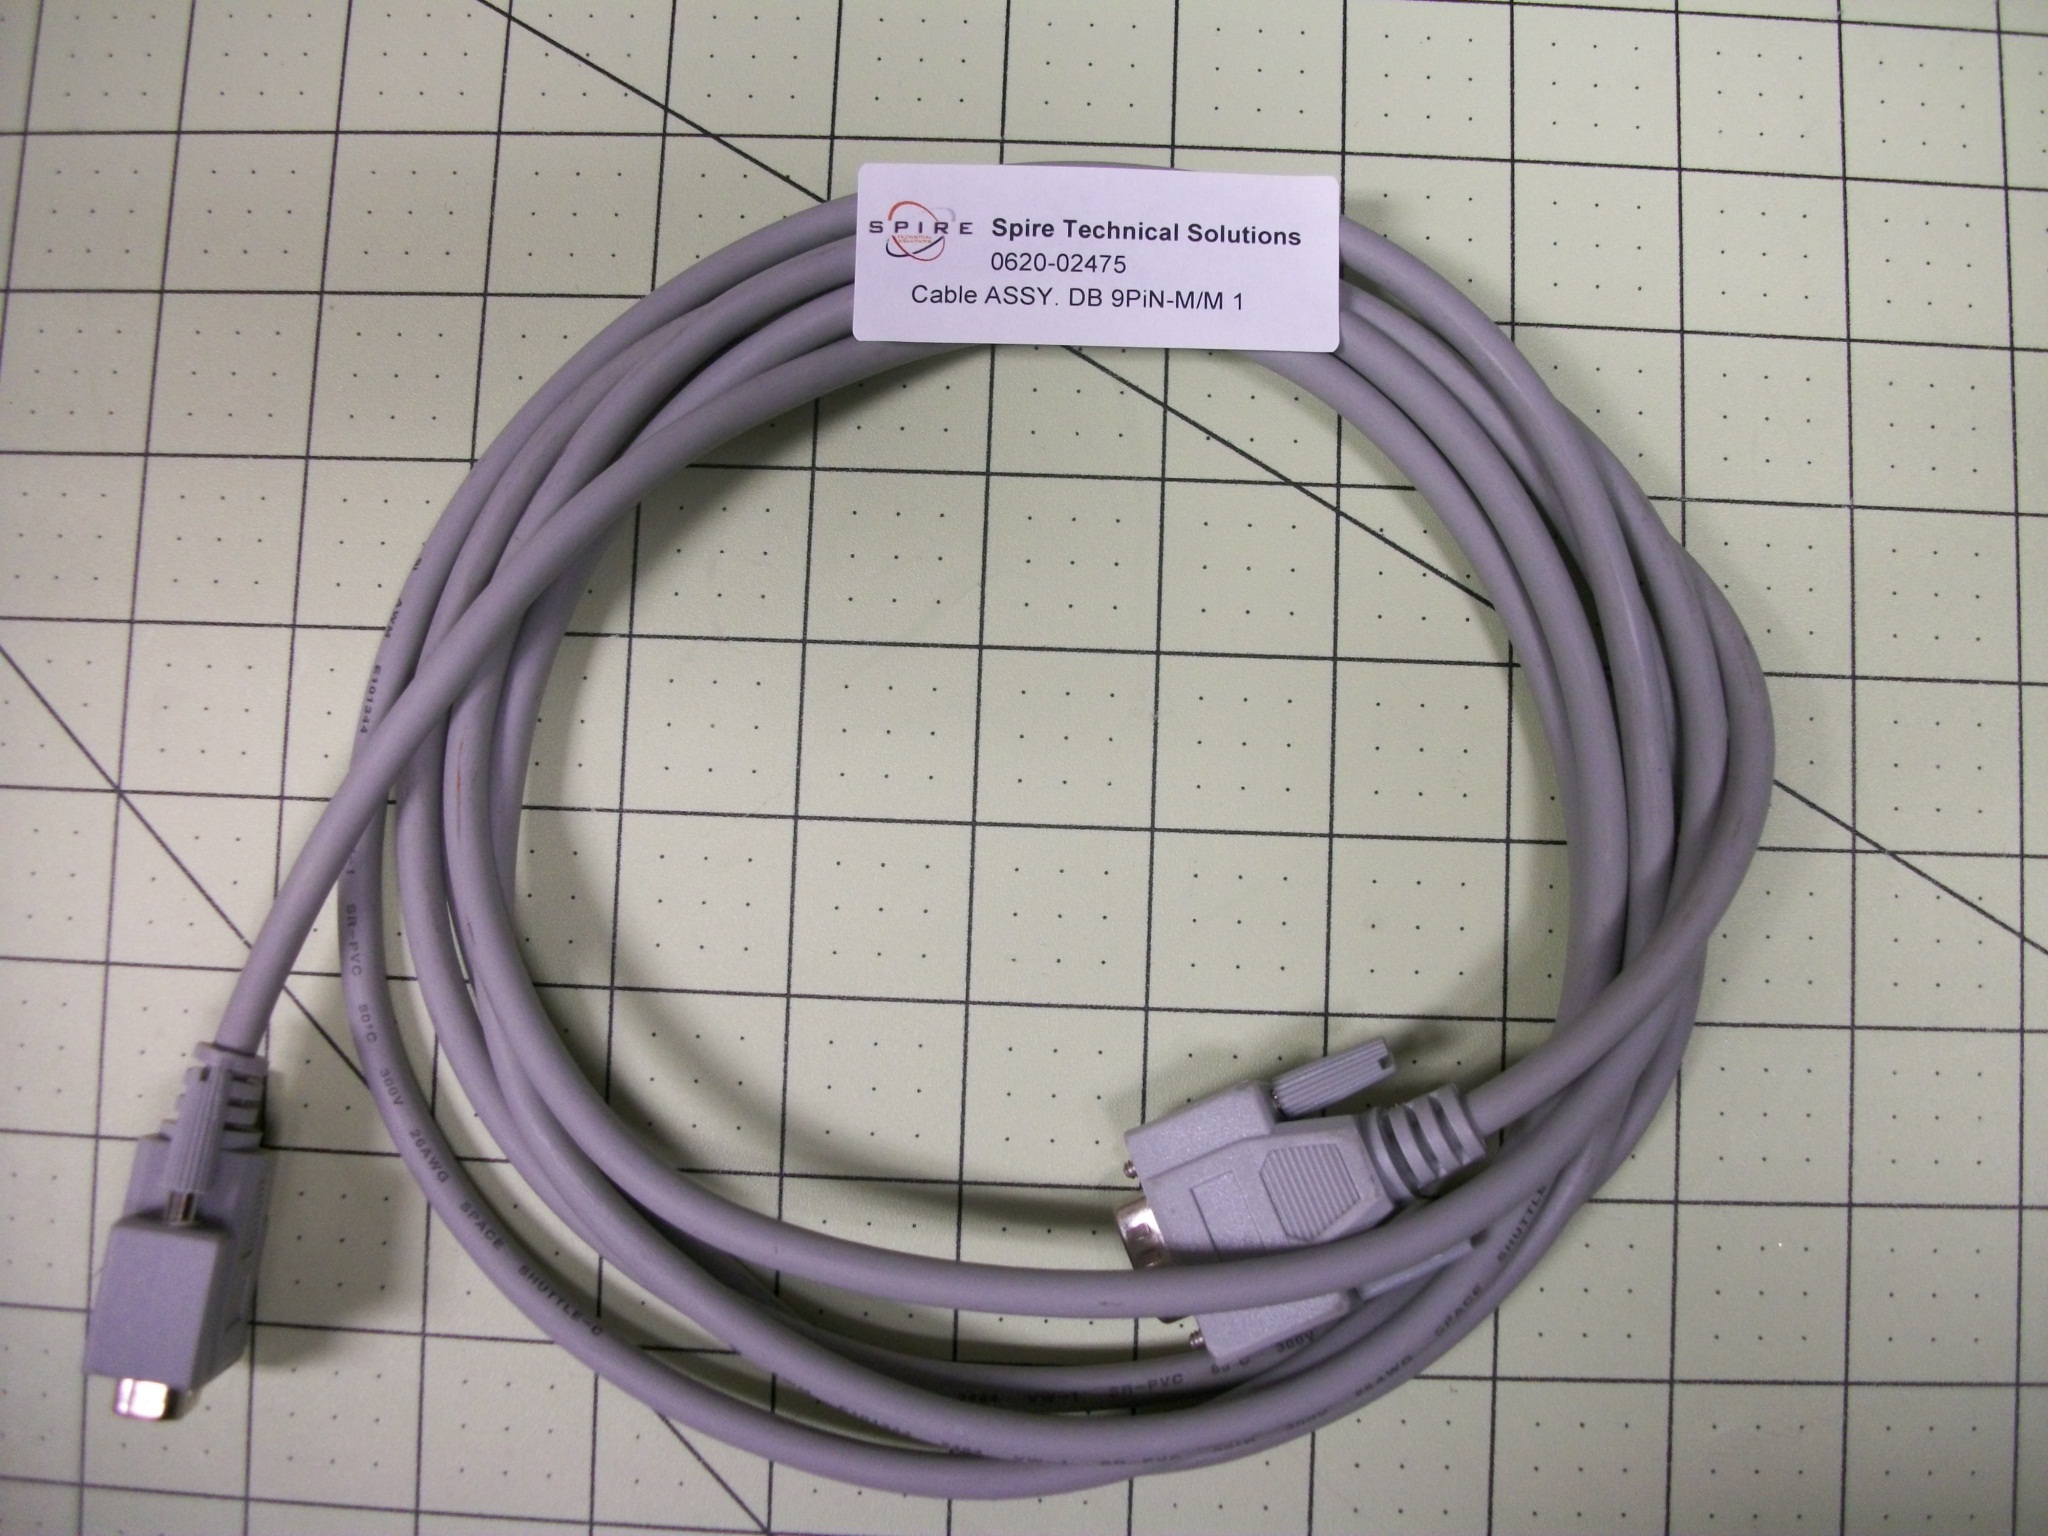 Cable ASSY. DB 9PiN-M/M 1